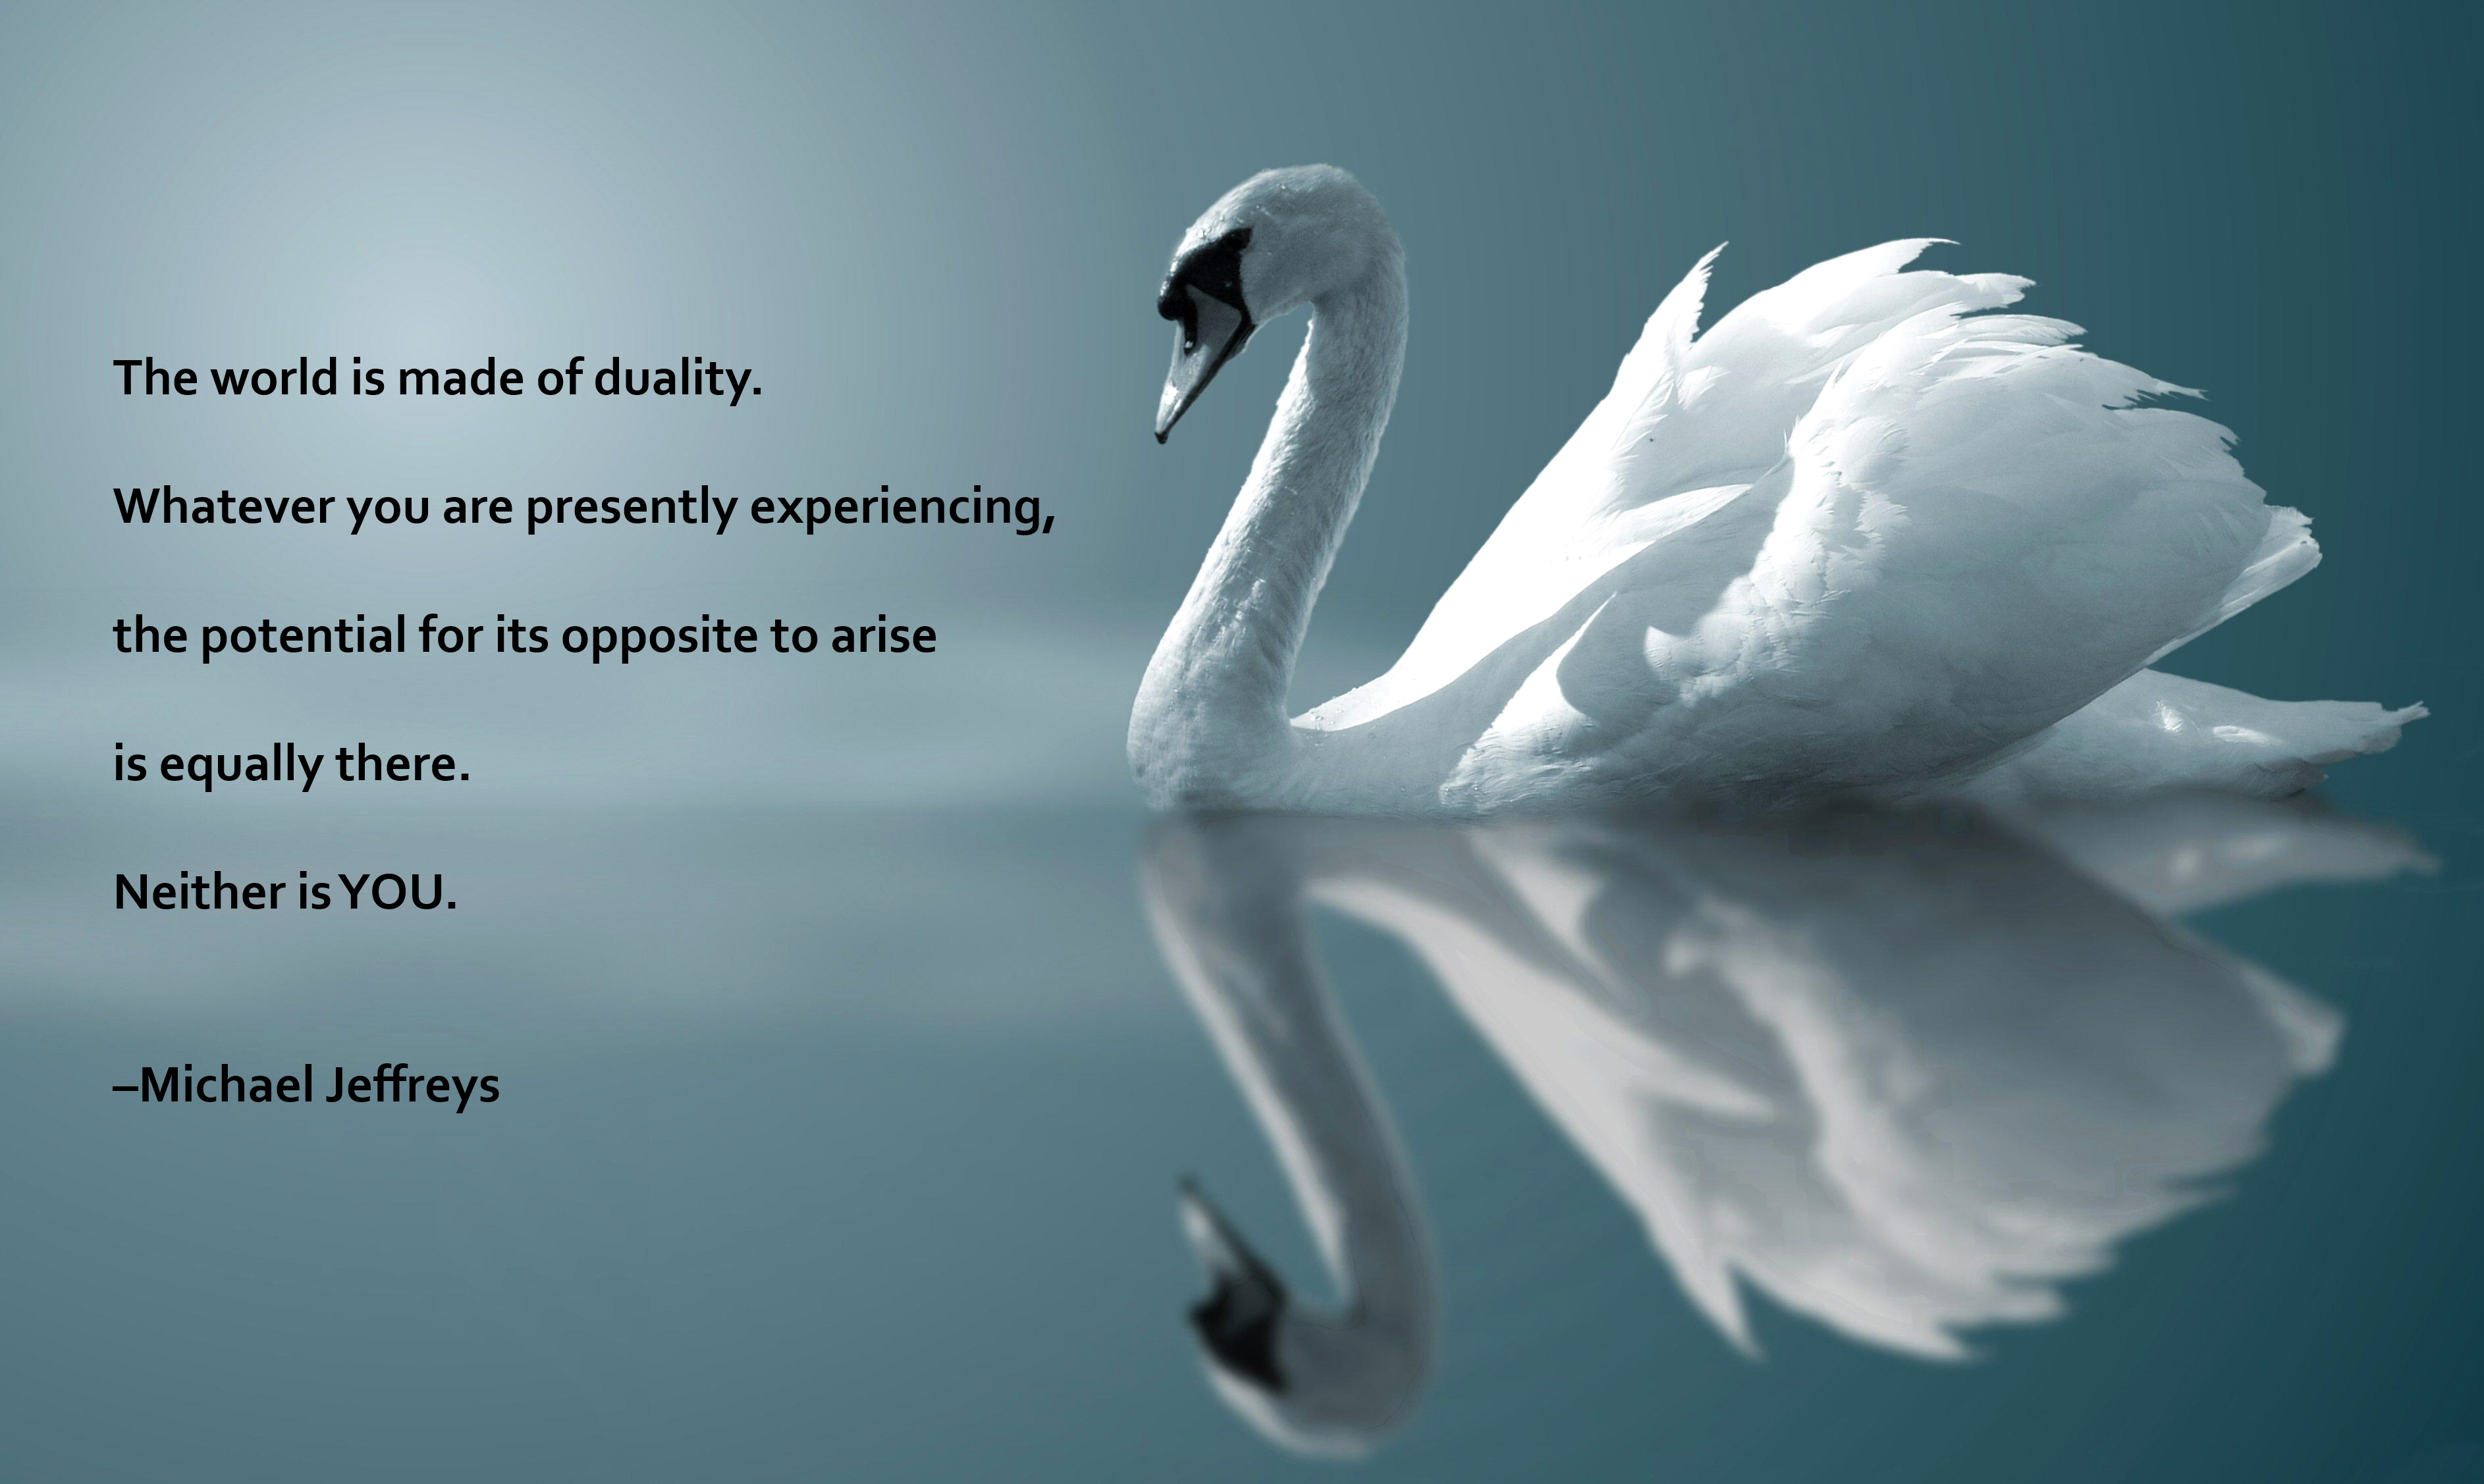 mj-quote-swan-reflection.jpg